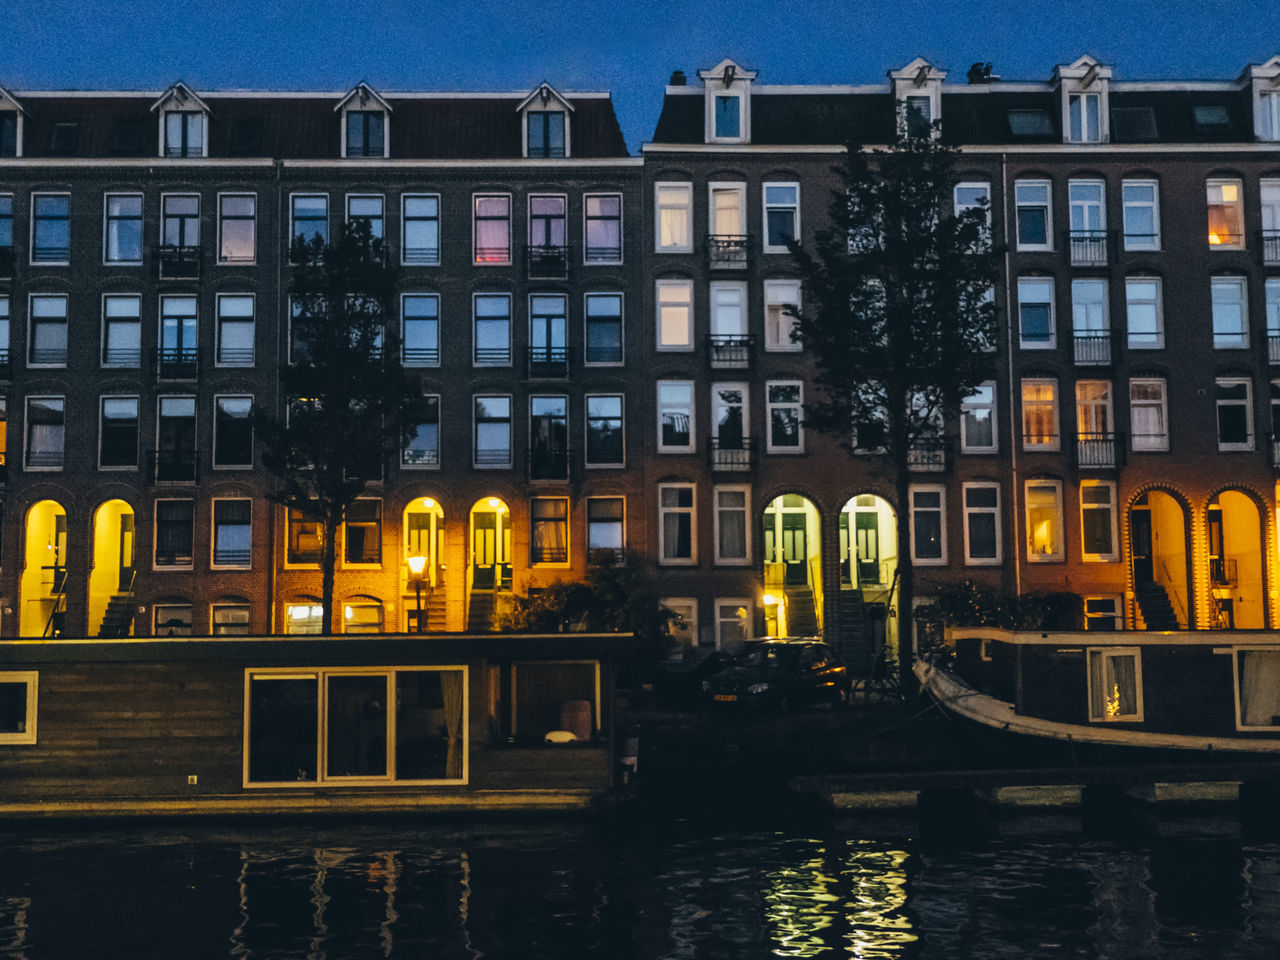 Amsterdam Architecture Building Exterior Built Structure Canal City Netherlands Night No People Outdoors Residential Building Sky Travel Destinations Water Waterfront Window